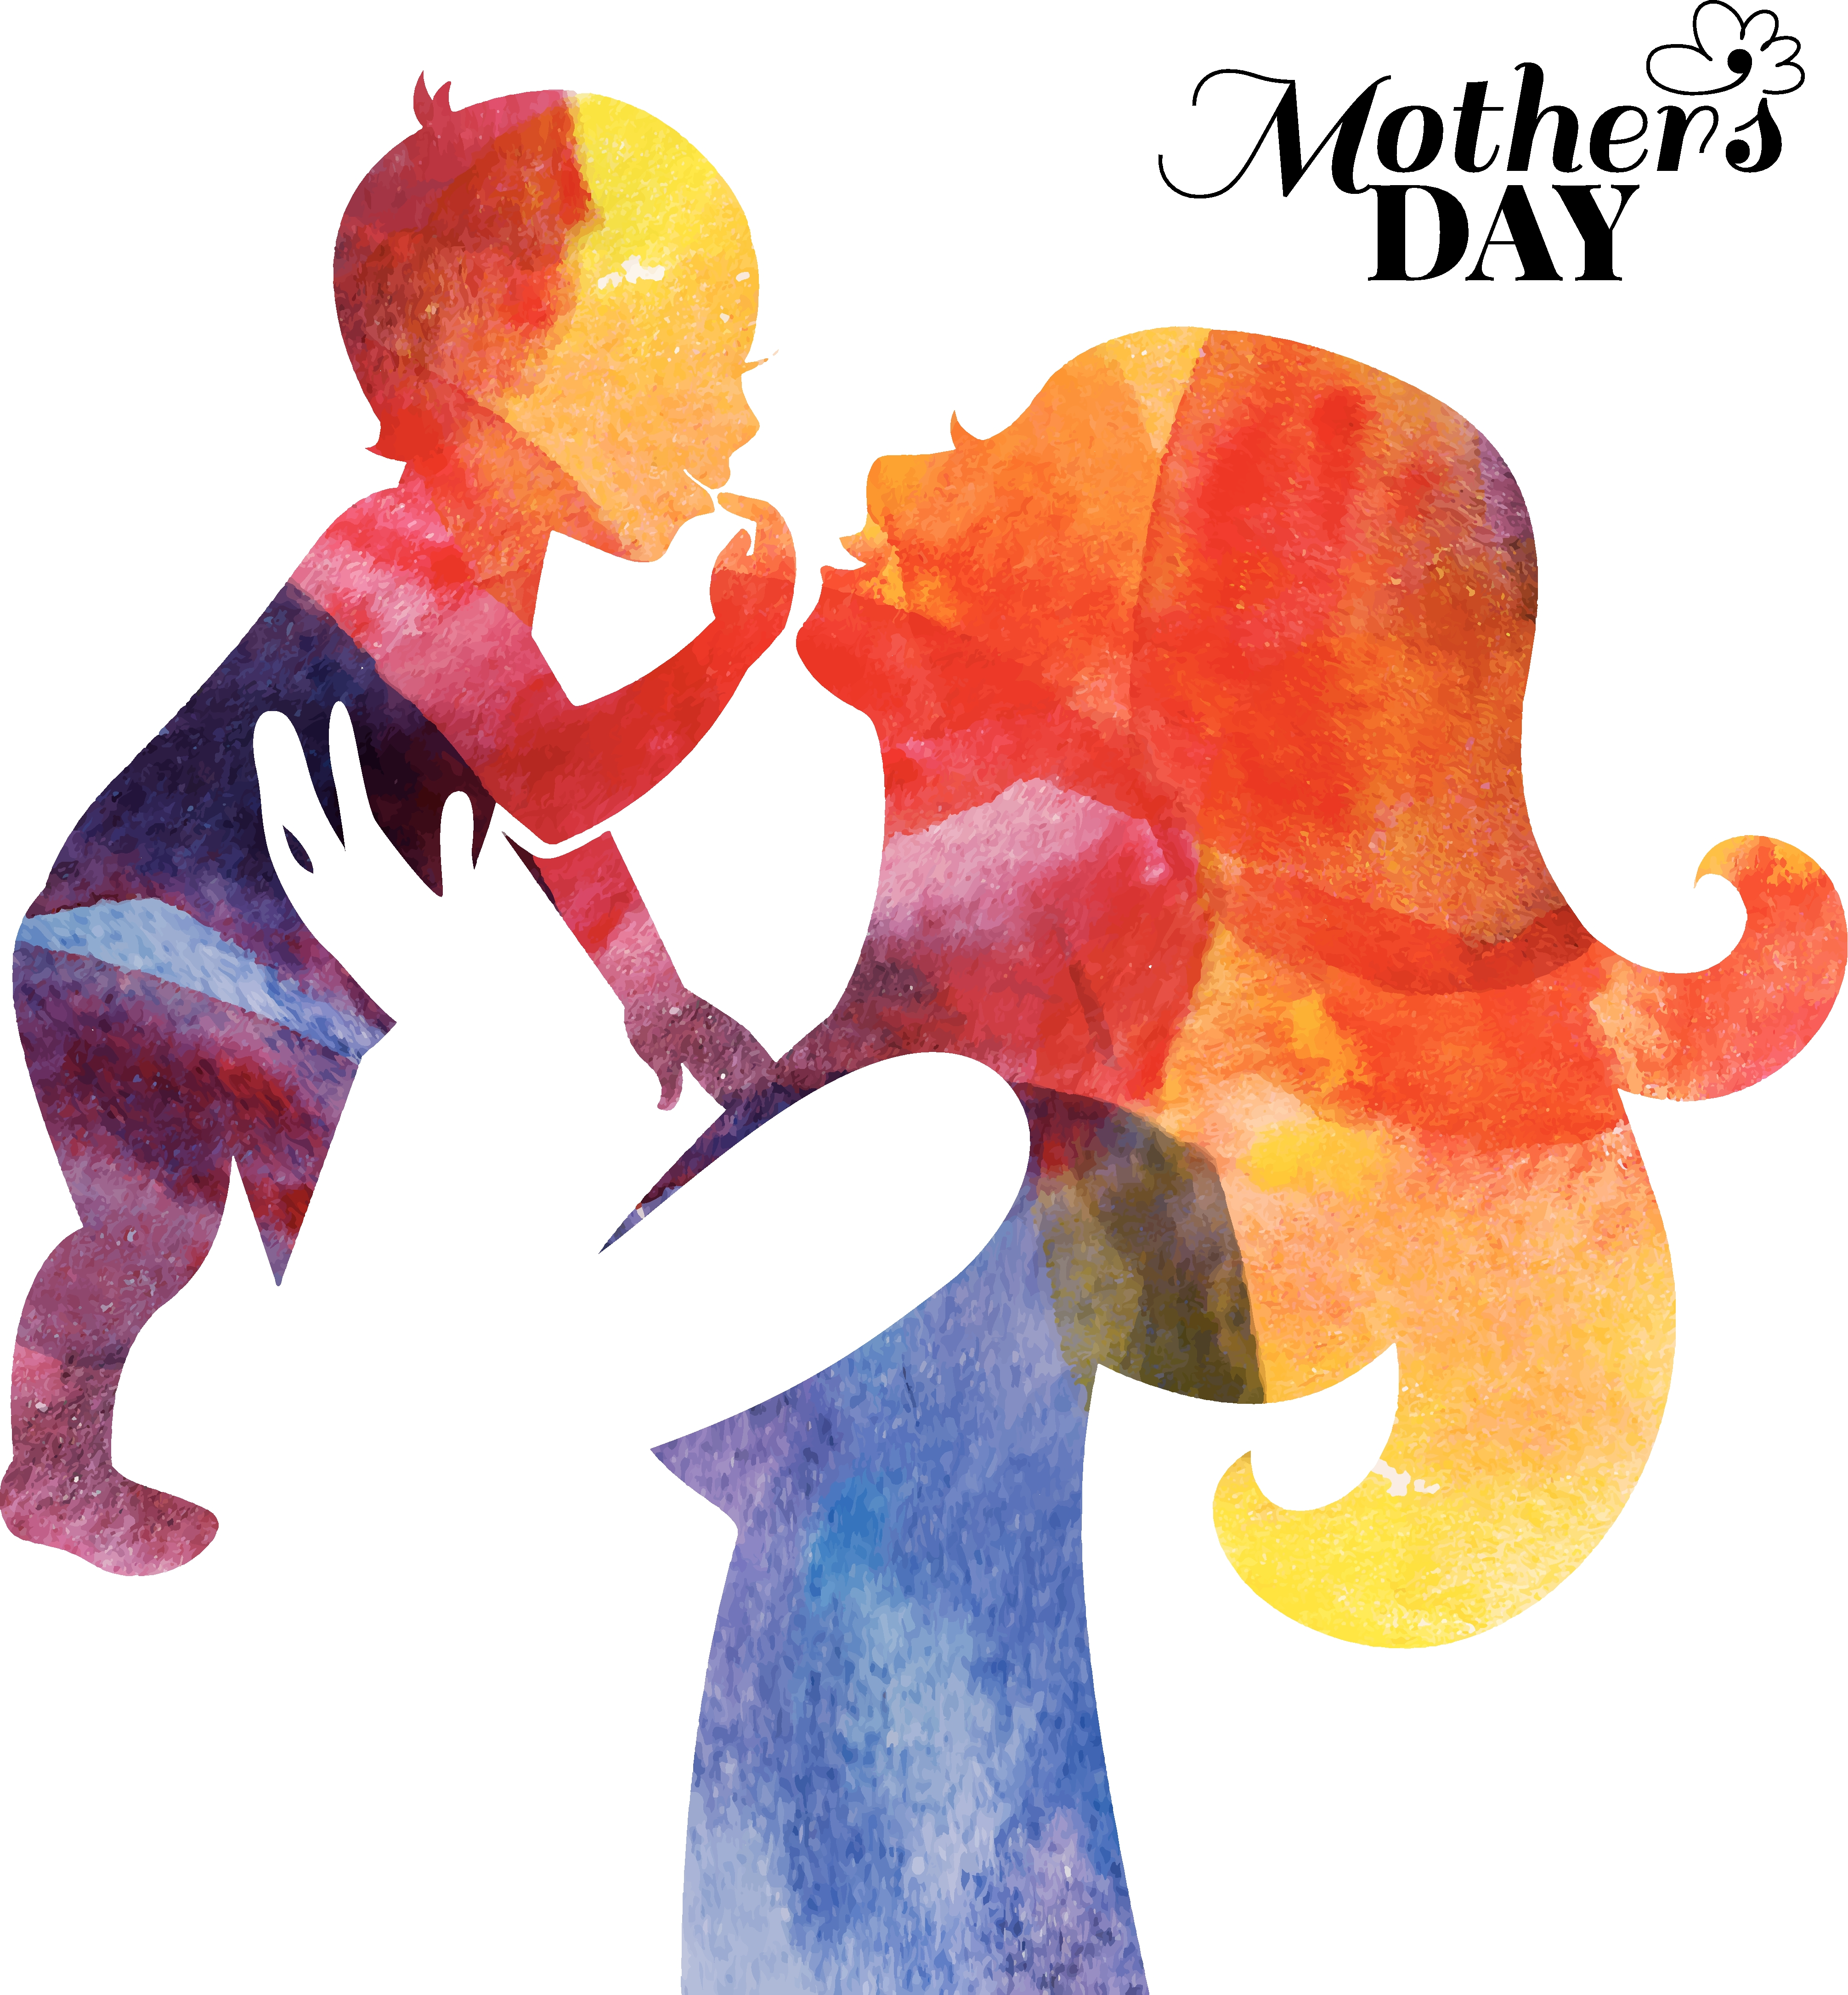 Graphic of mother holding up a young child